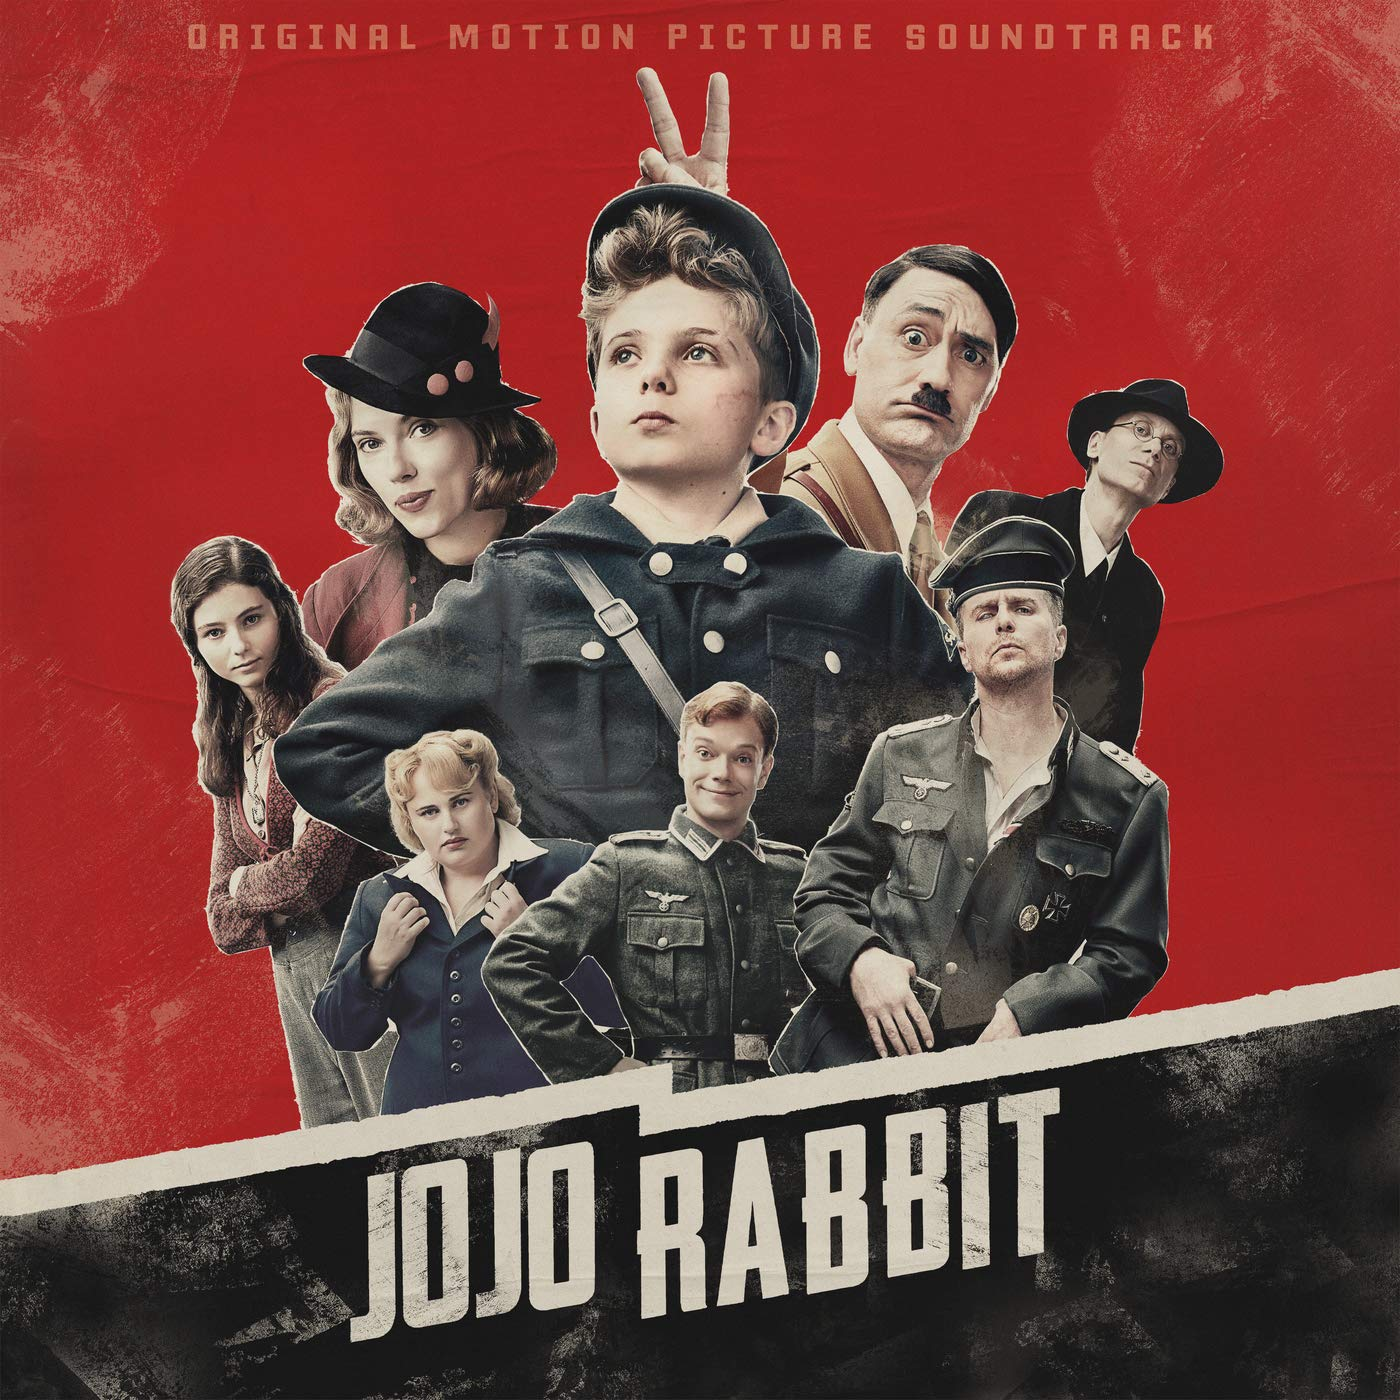 bande originale soundtrack ost score jojo rabbit disney fox